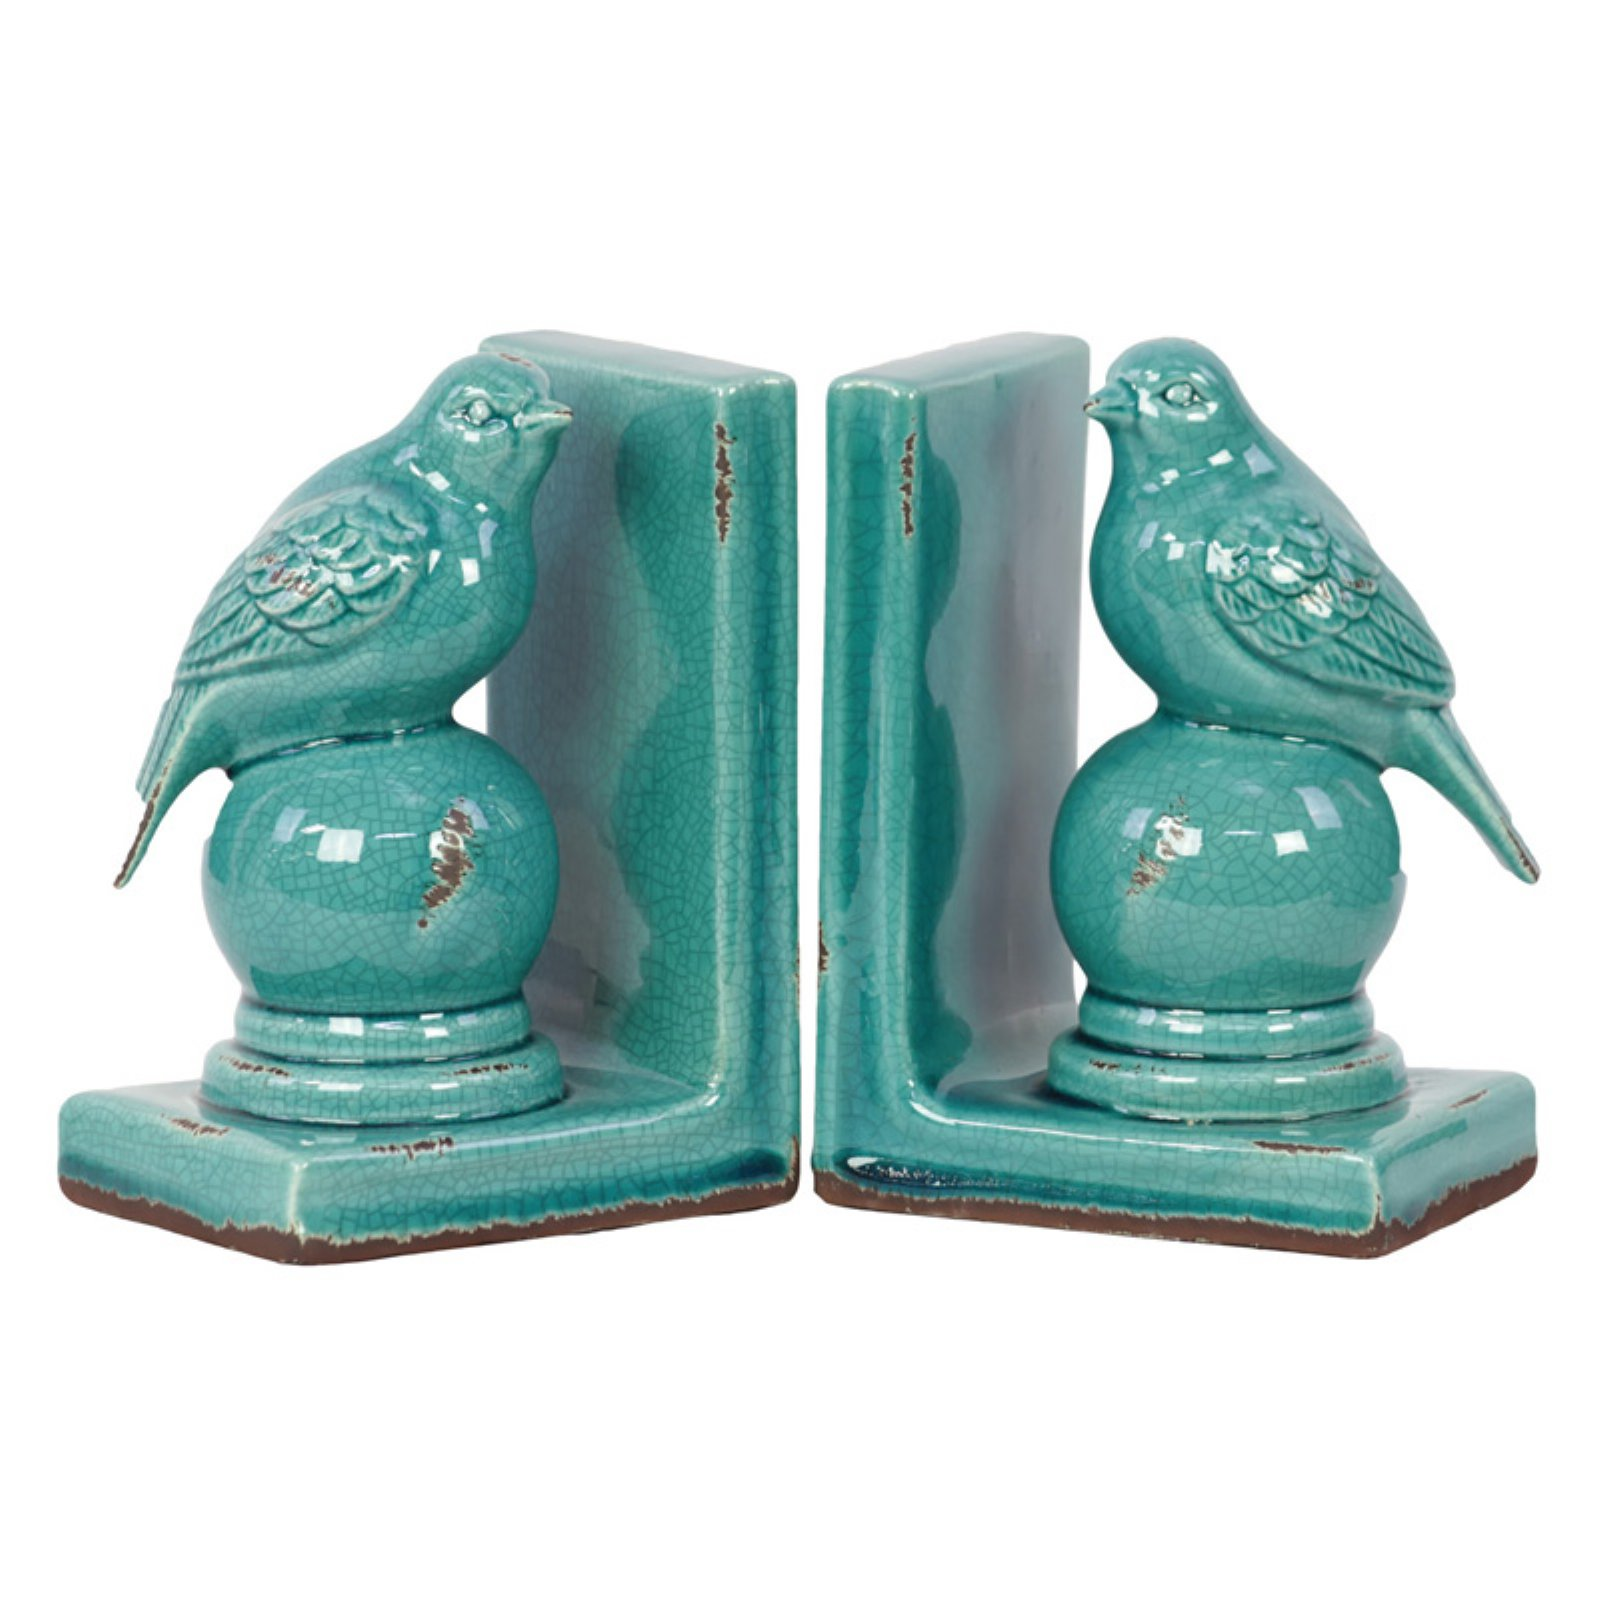 Urban Trends Collection: Stoneware Bird Bookend Gloss Distressed Finish